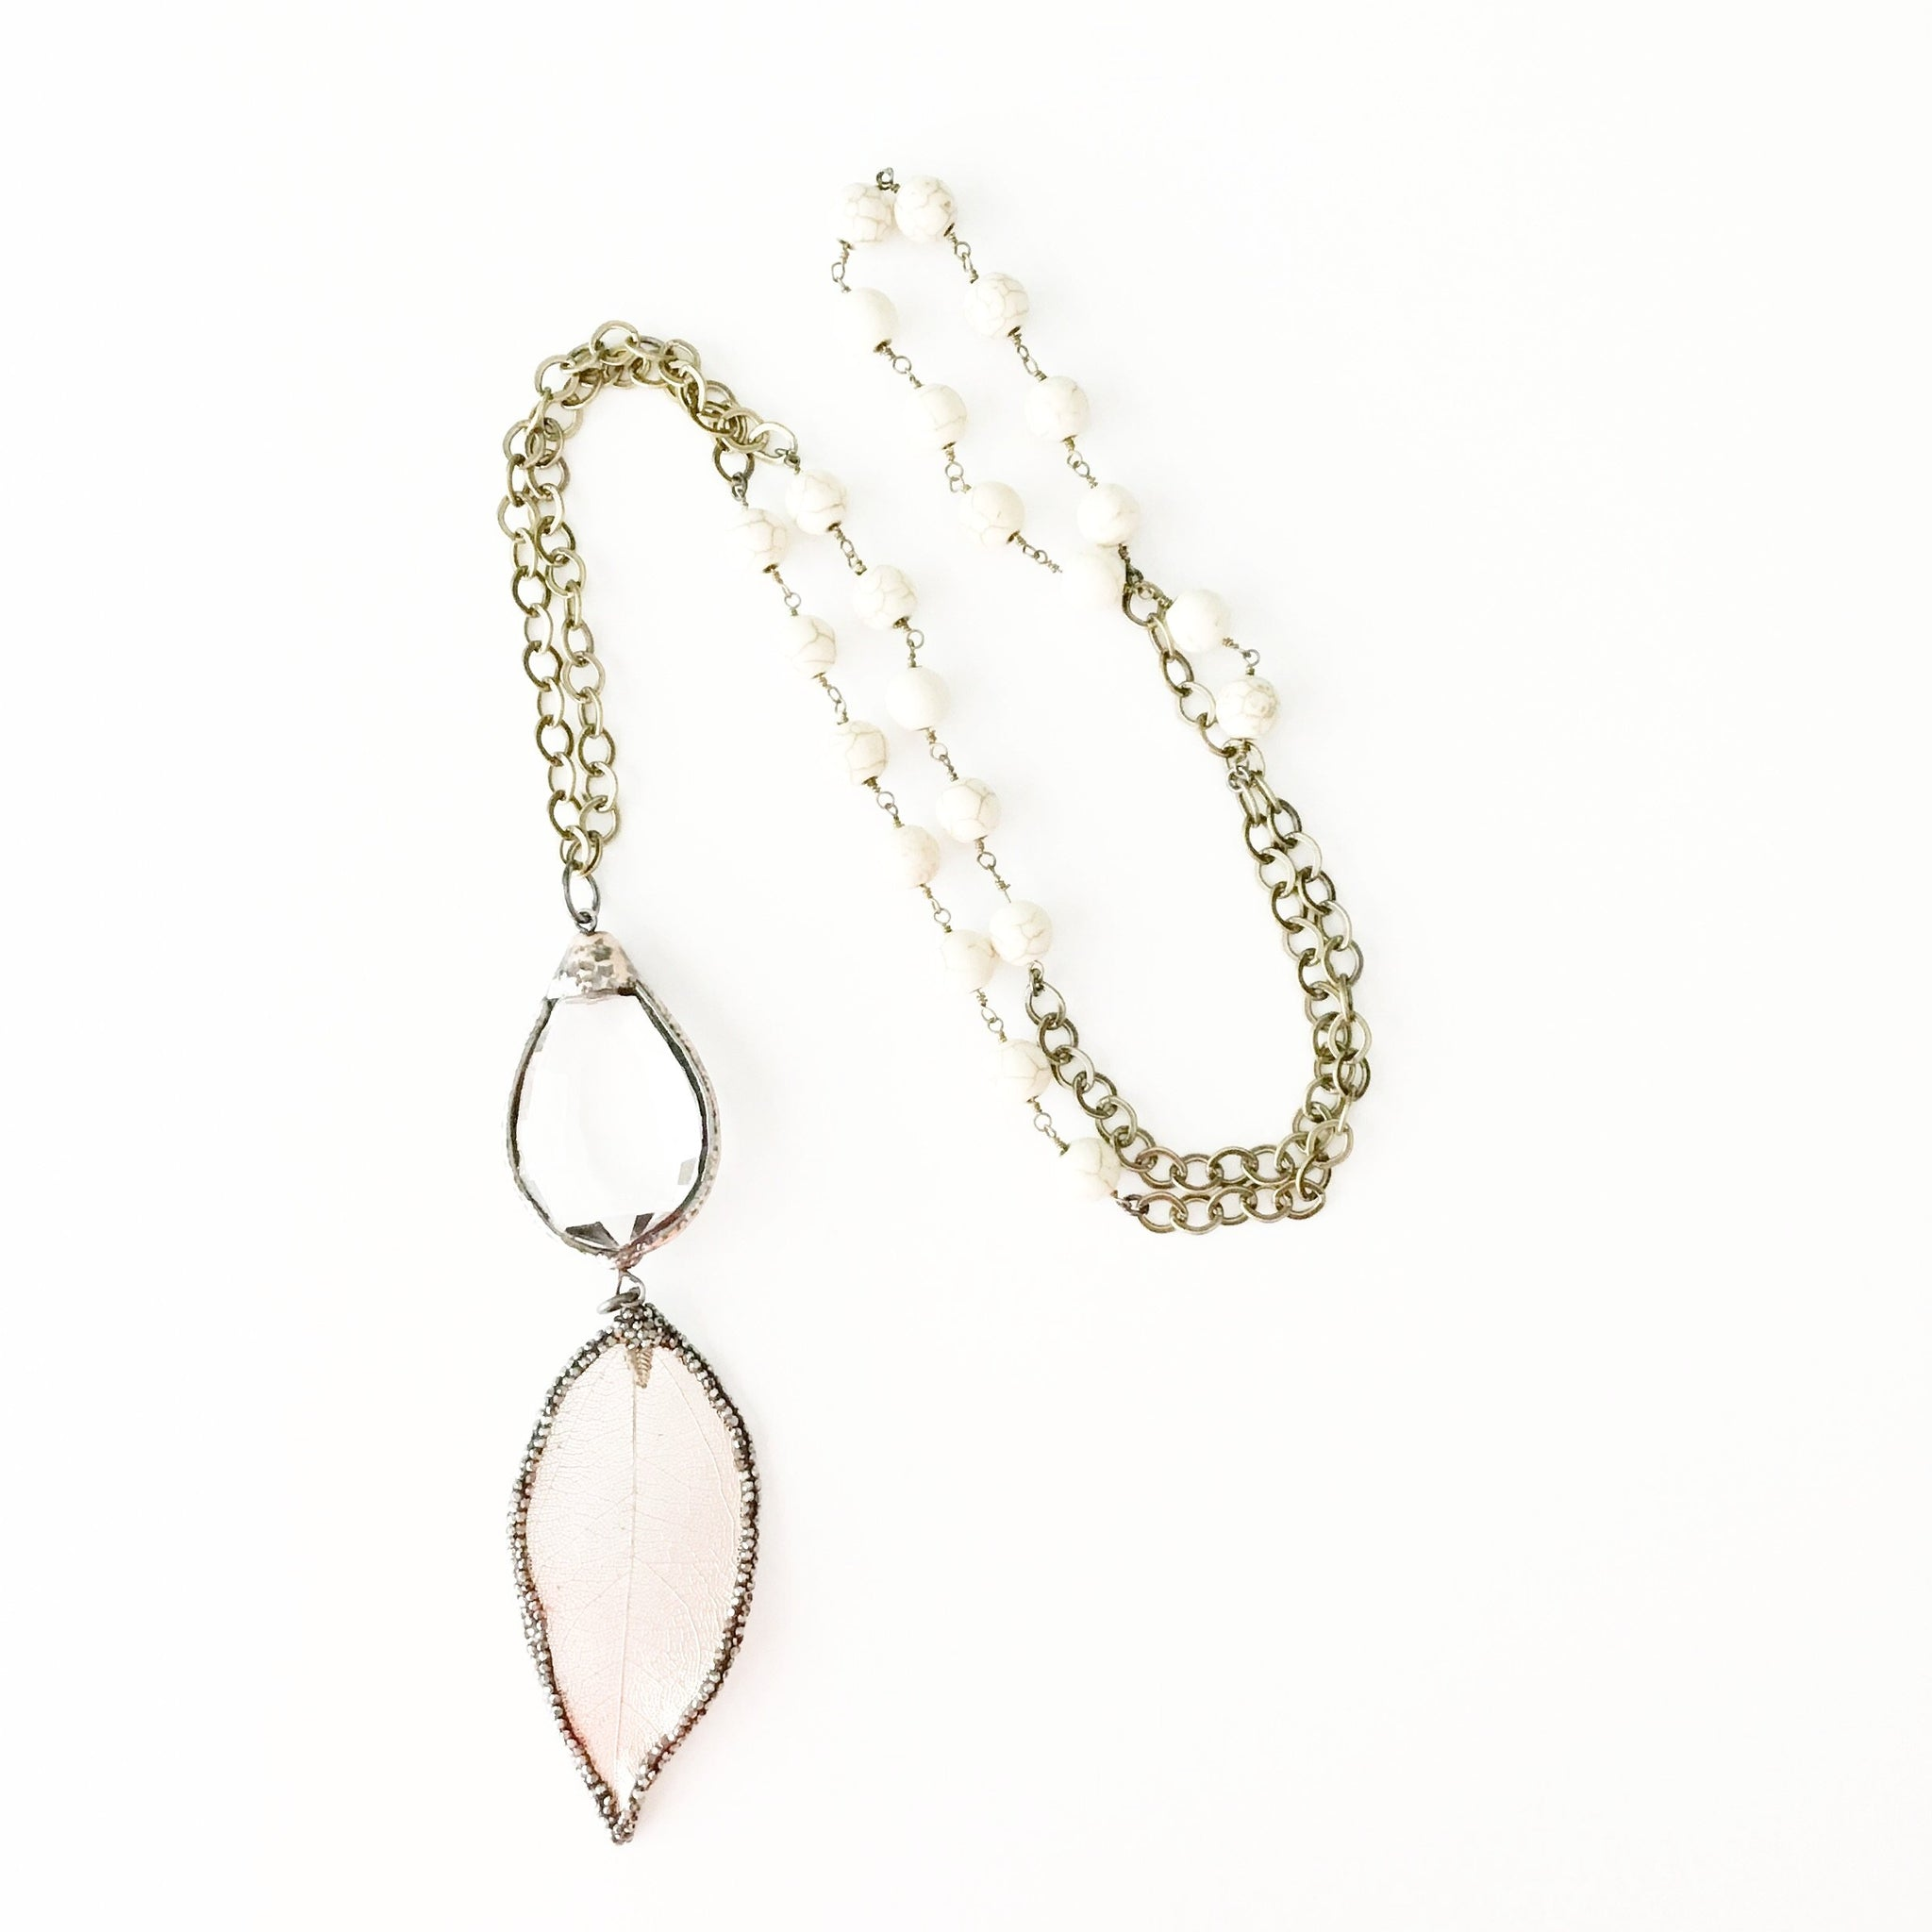 Quartz and Leaf Focal Necklace